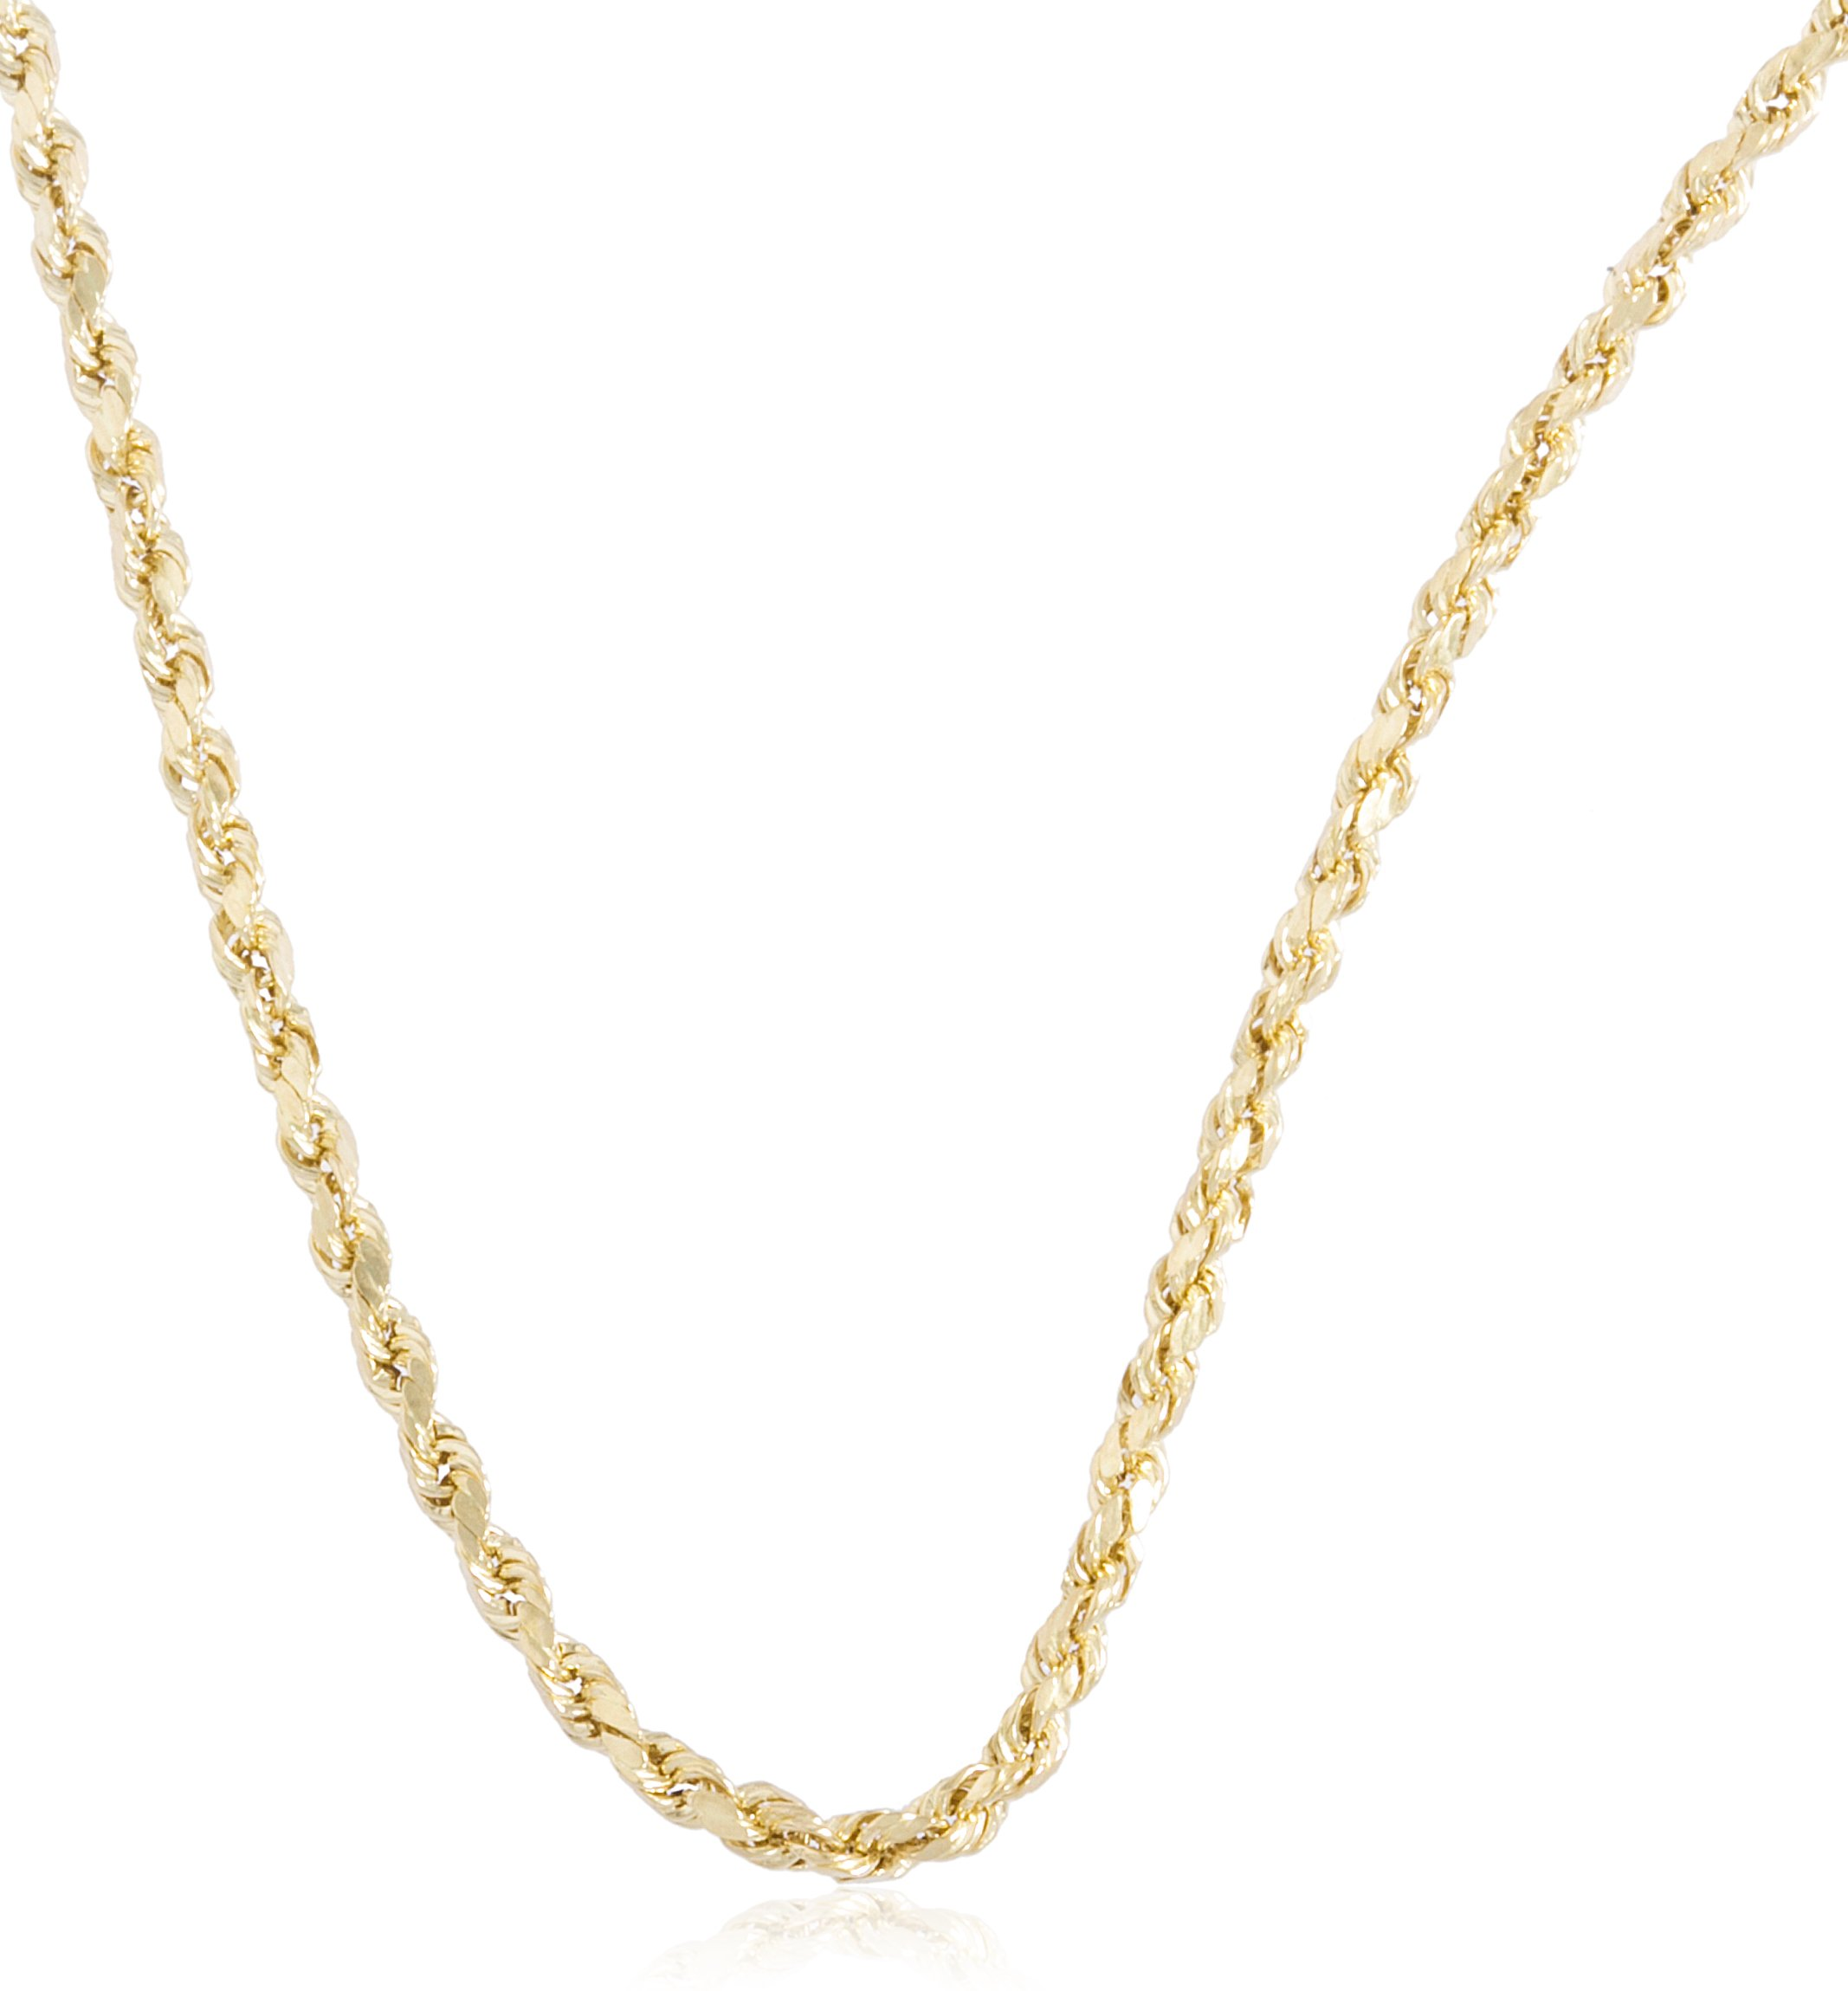 10K Yellow Gold 2mm D-cut Rope Chain Necklace - 16'' 18'' & 20'' Available (20 I..